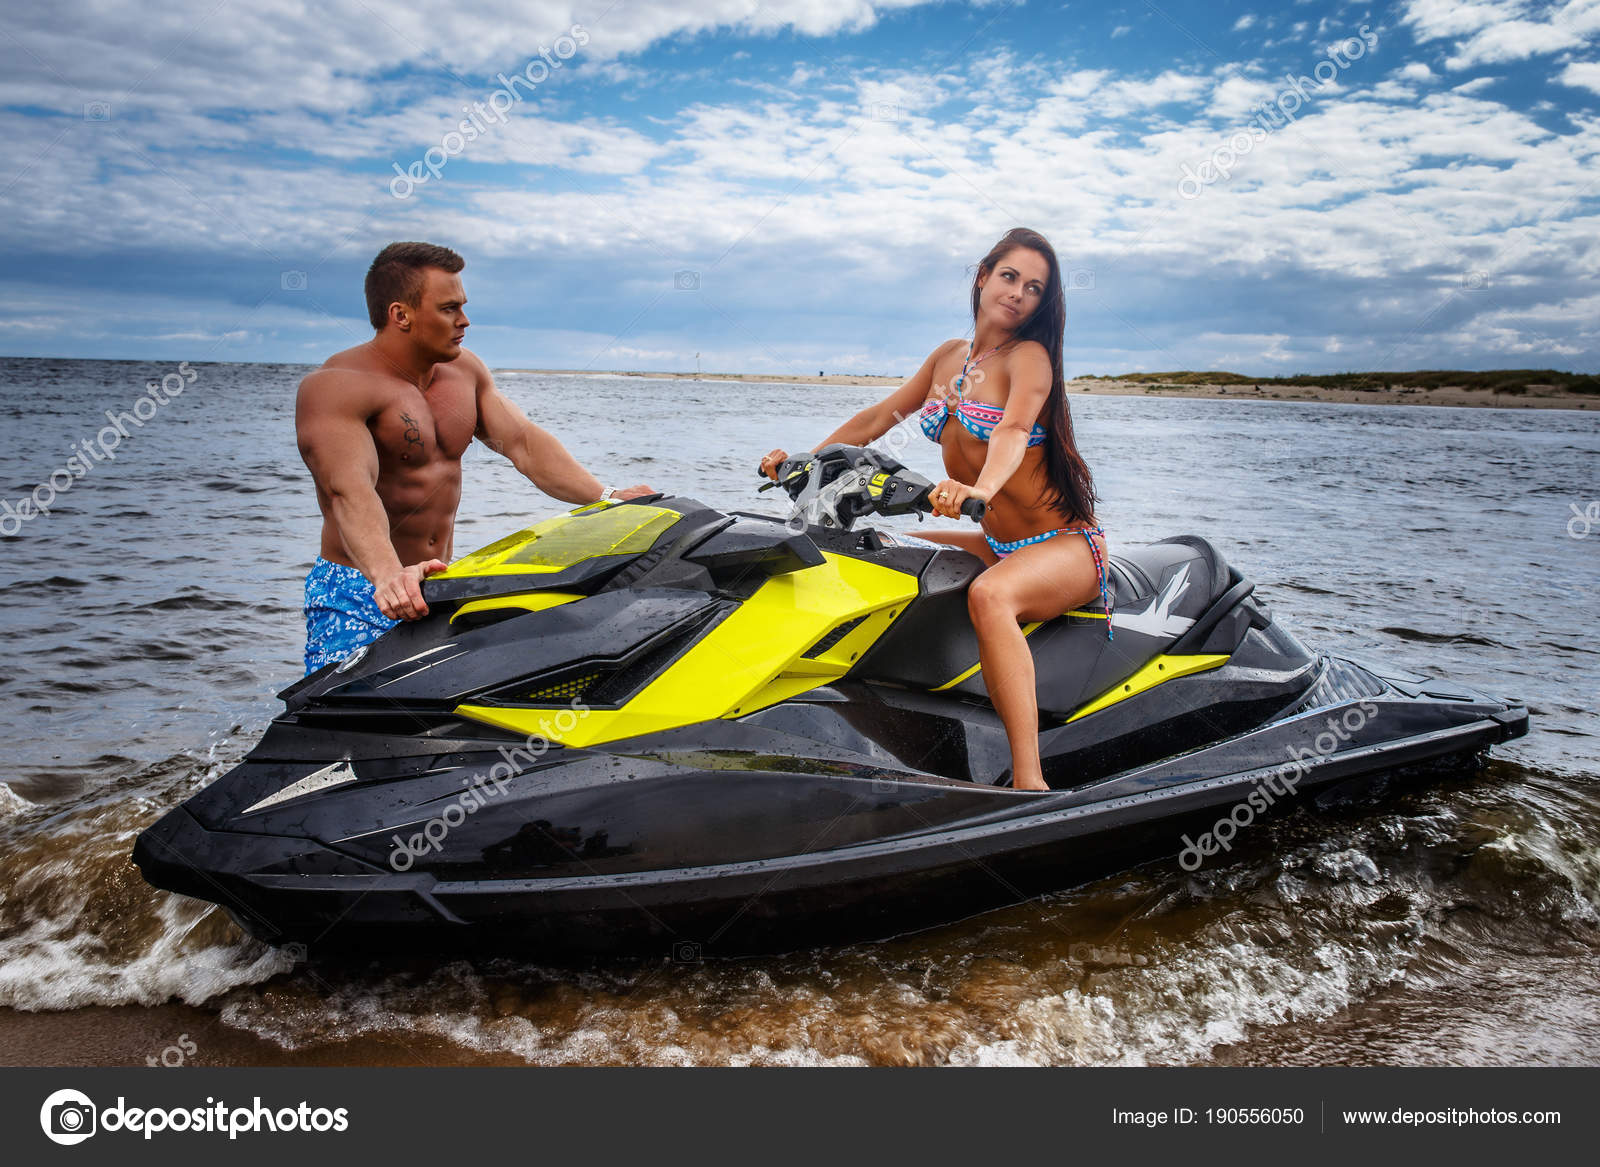 Attractive Couple Of A Sexy Girl And Shirtless Muscular Male Have Fun With A Jet Ski On A Seacoast Stock Photo C Fxquadro 190556050